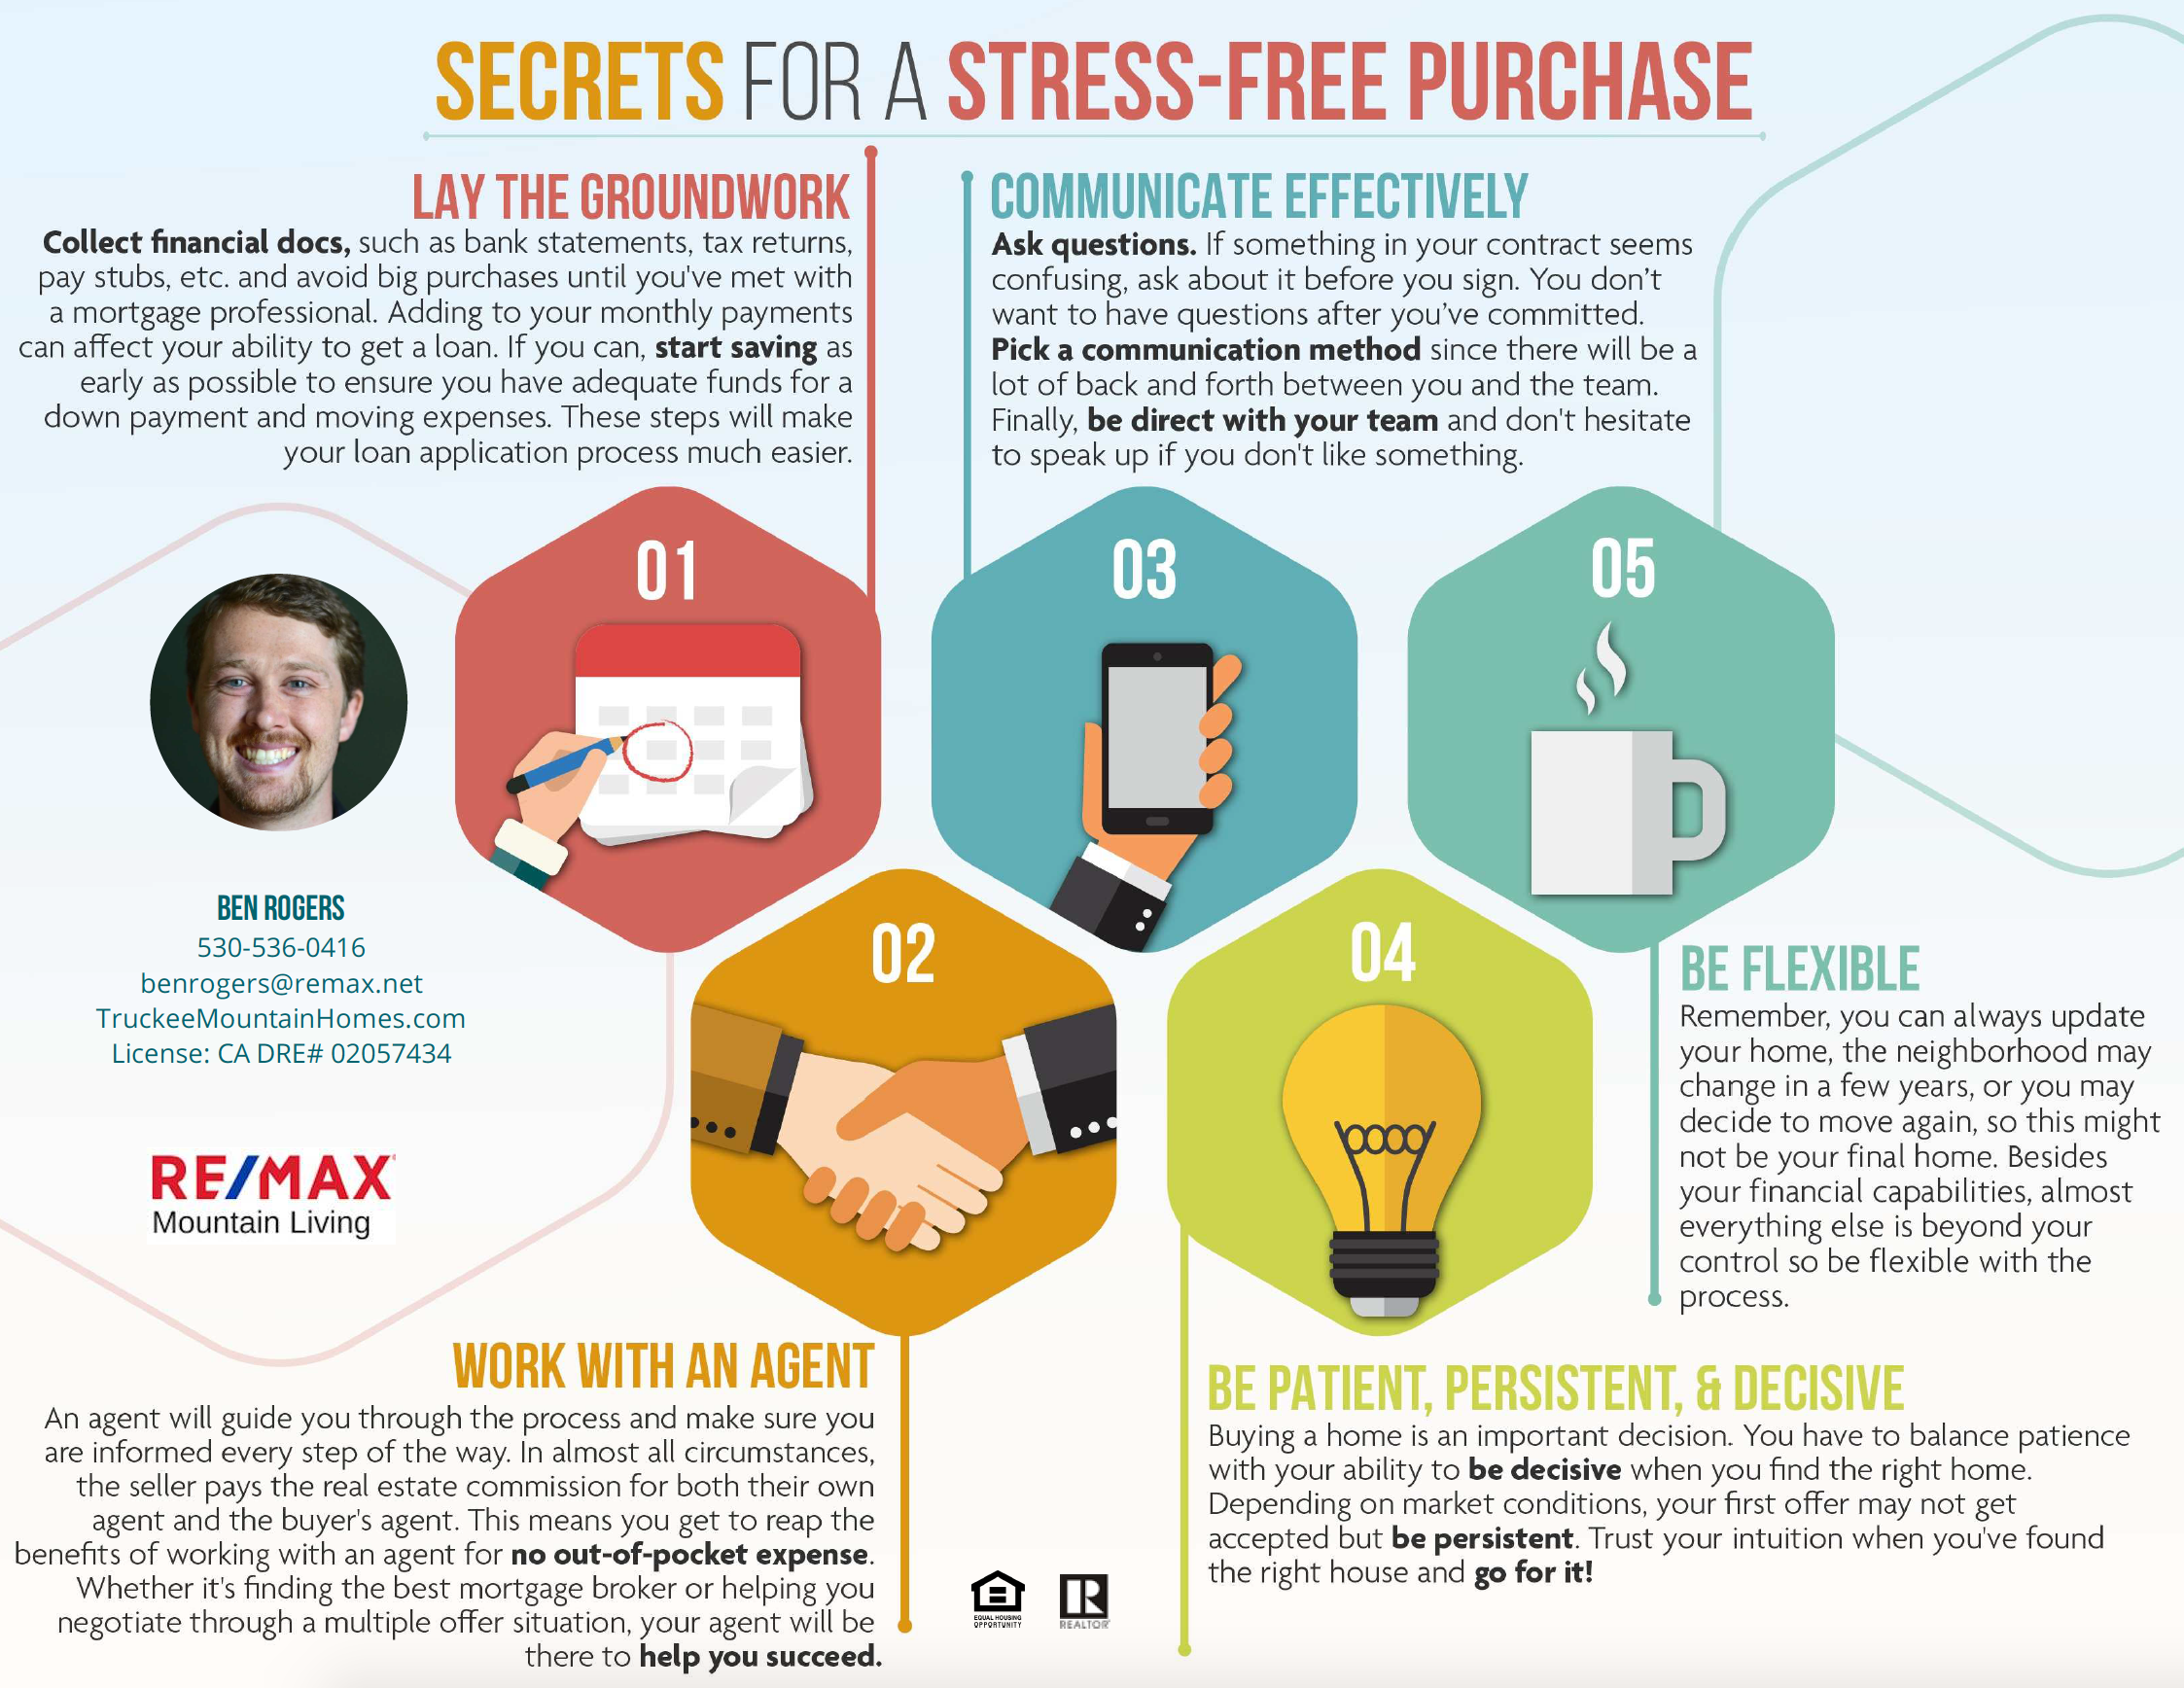 Secrets to a Stress Free Transaction